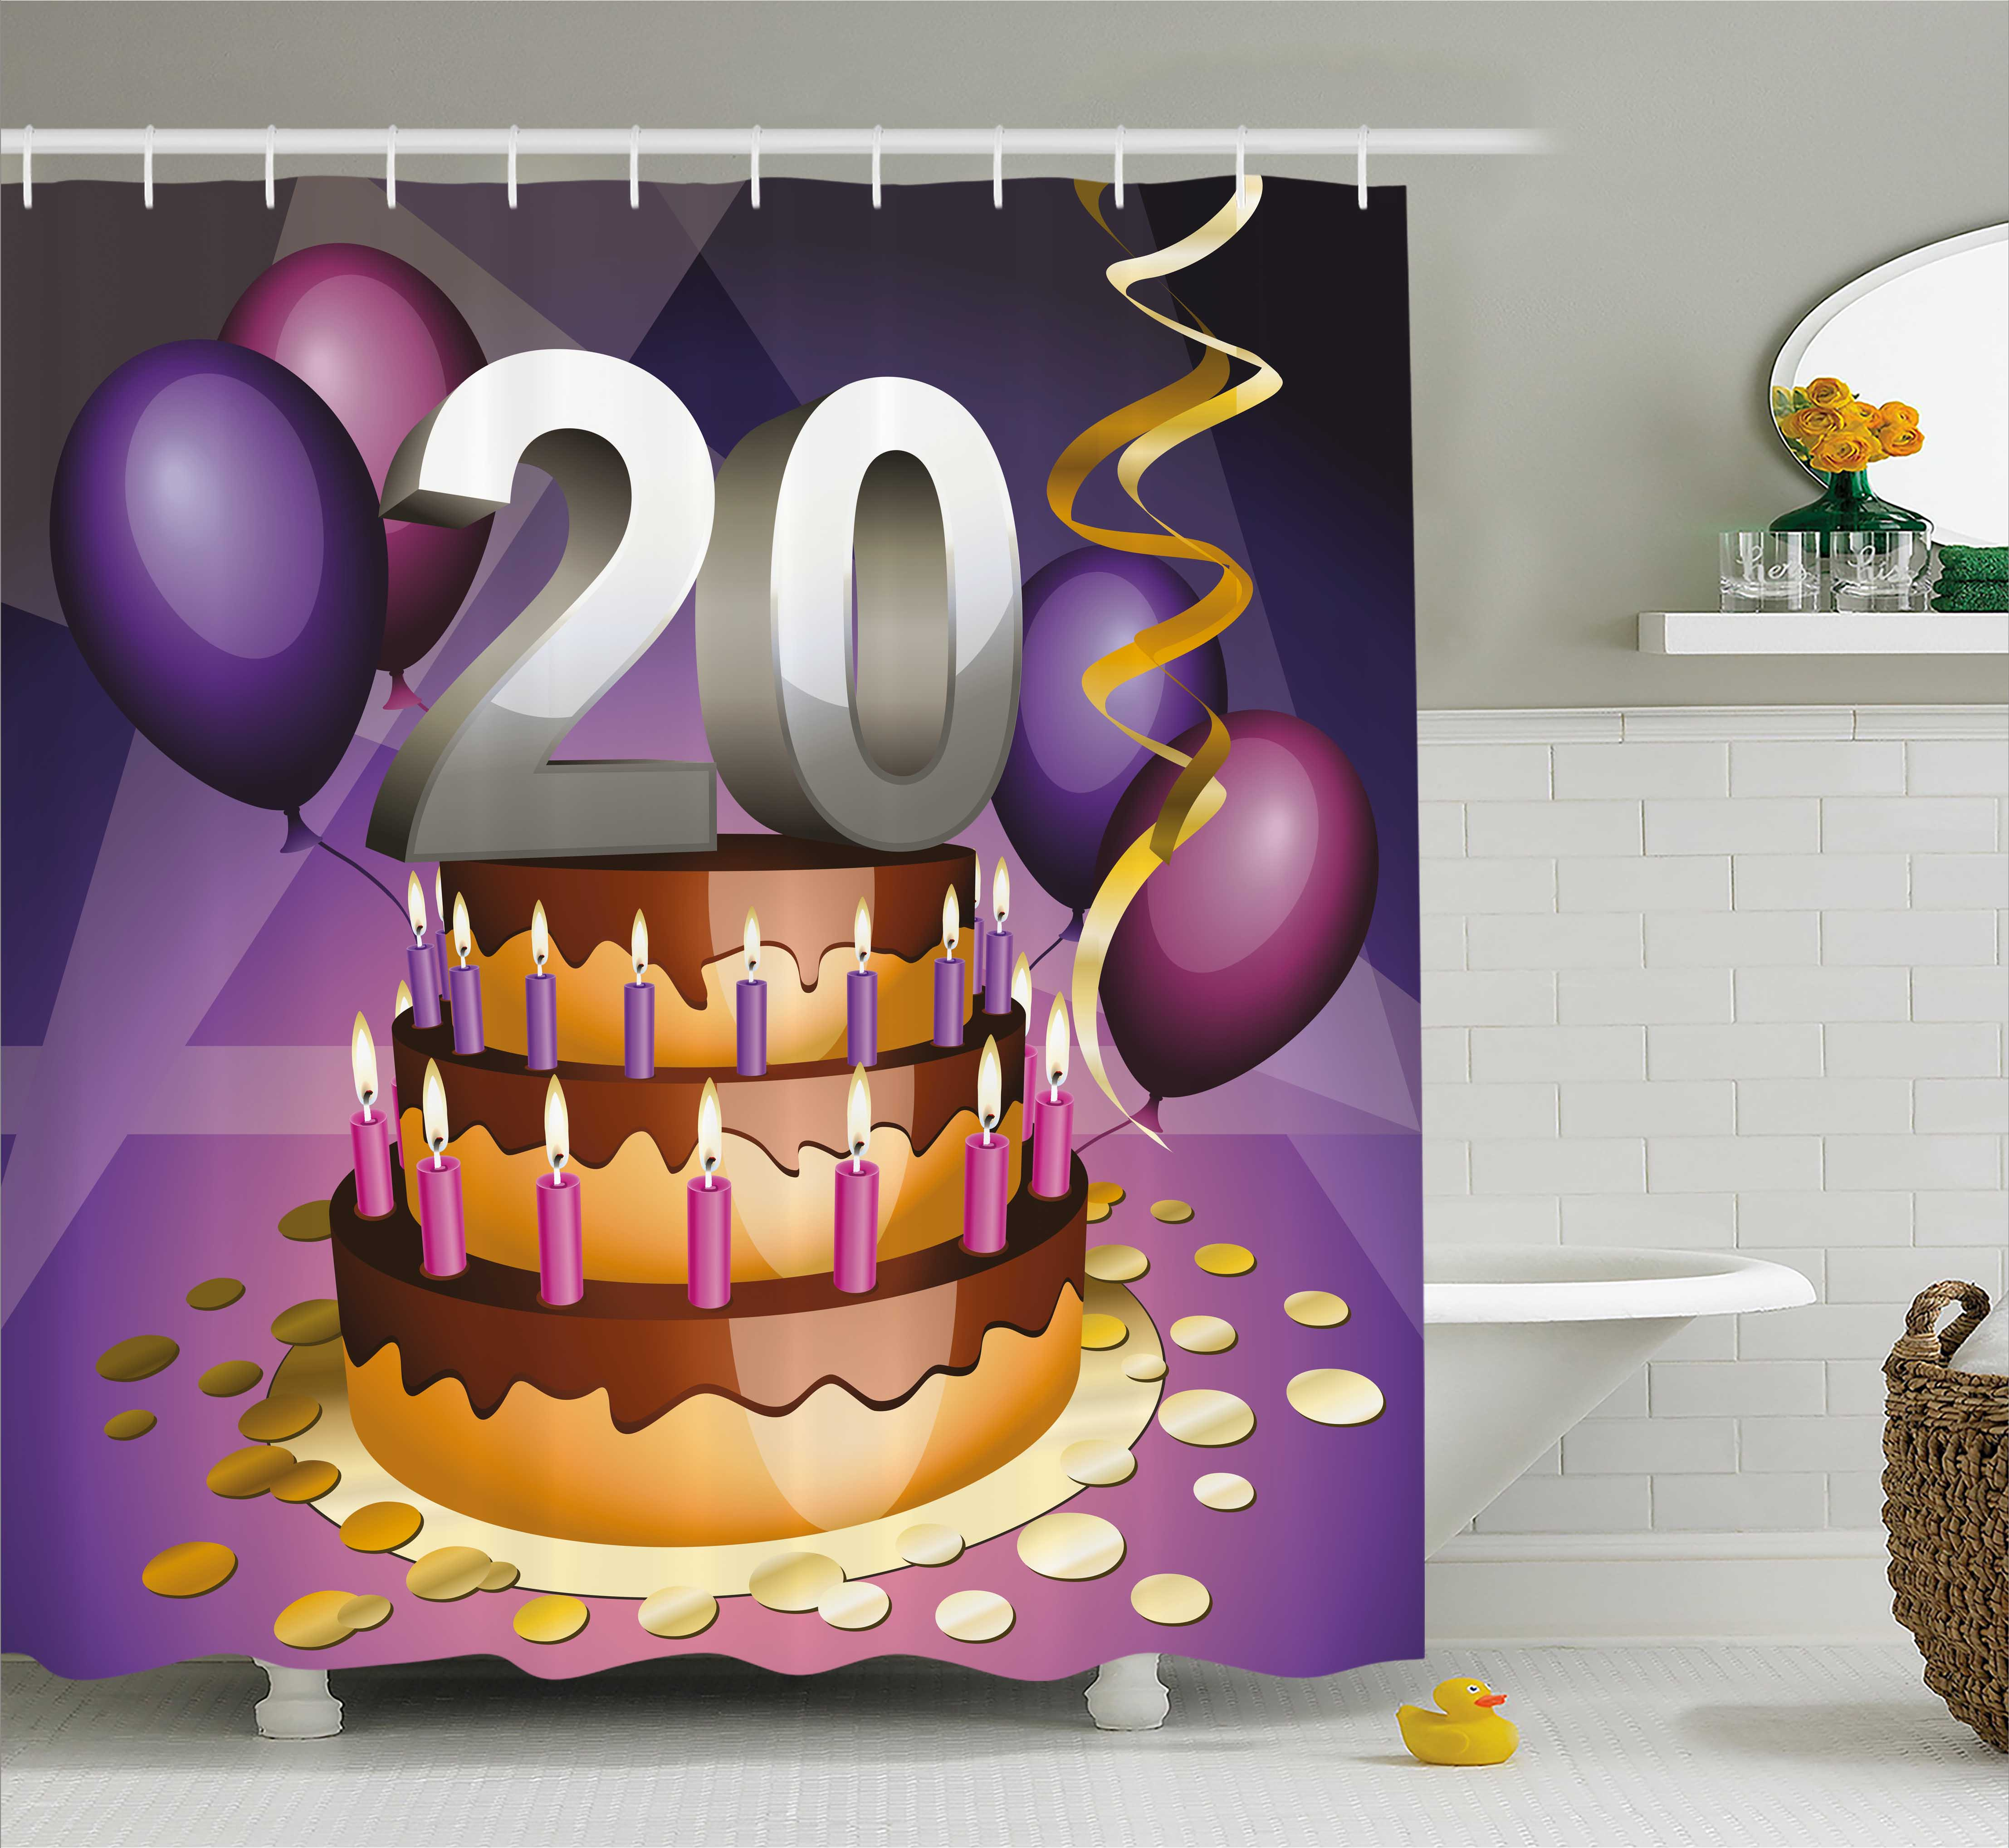 20th Birthday Decorations Shower Curtain Cartoon Print Cake Golden Frosting And Candles Fabric Bathroom Set With Hooks 69W X 84L Inches Extra